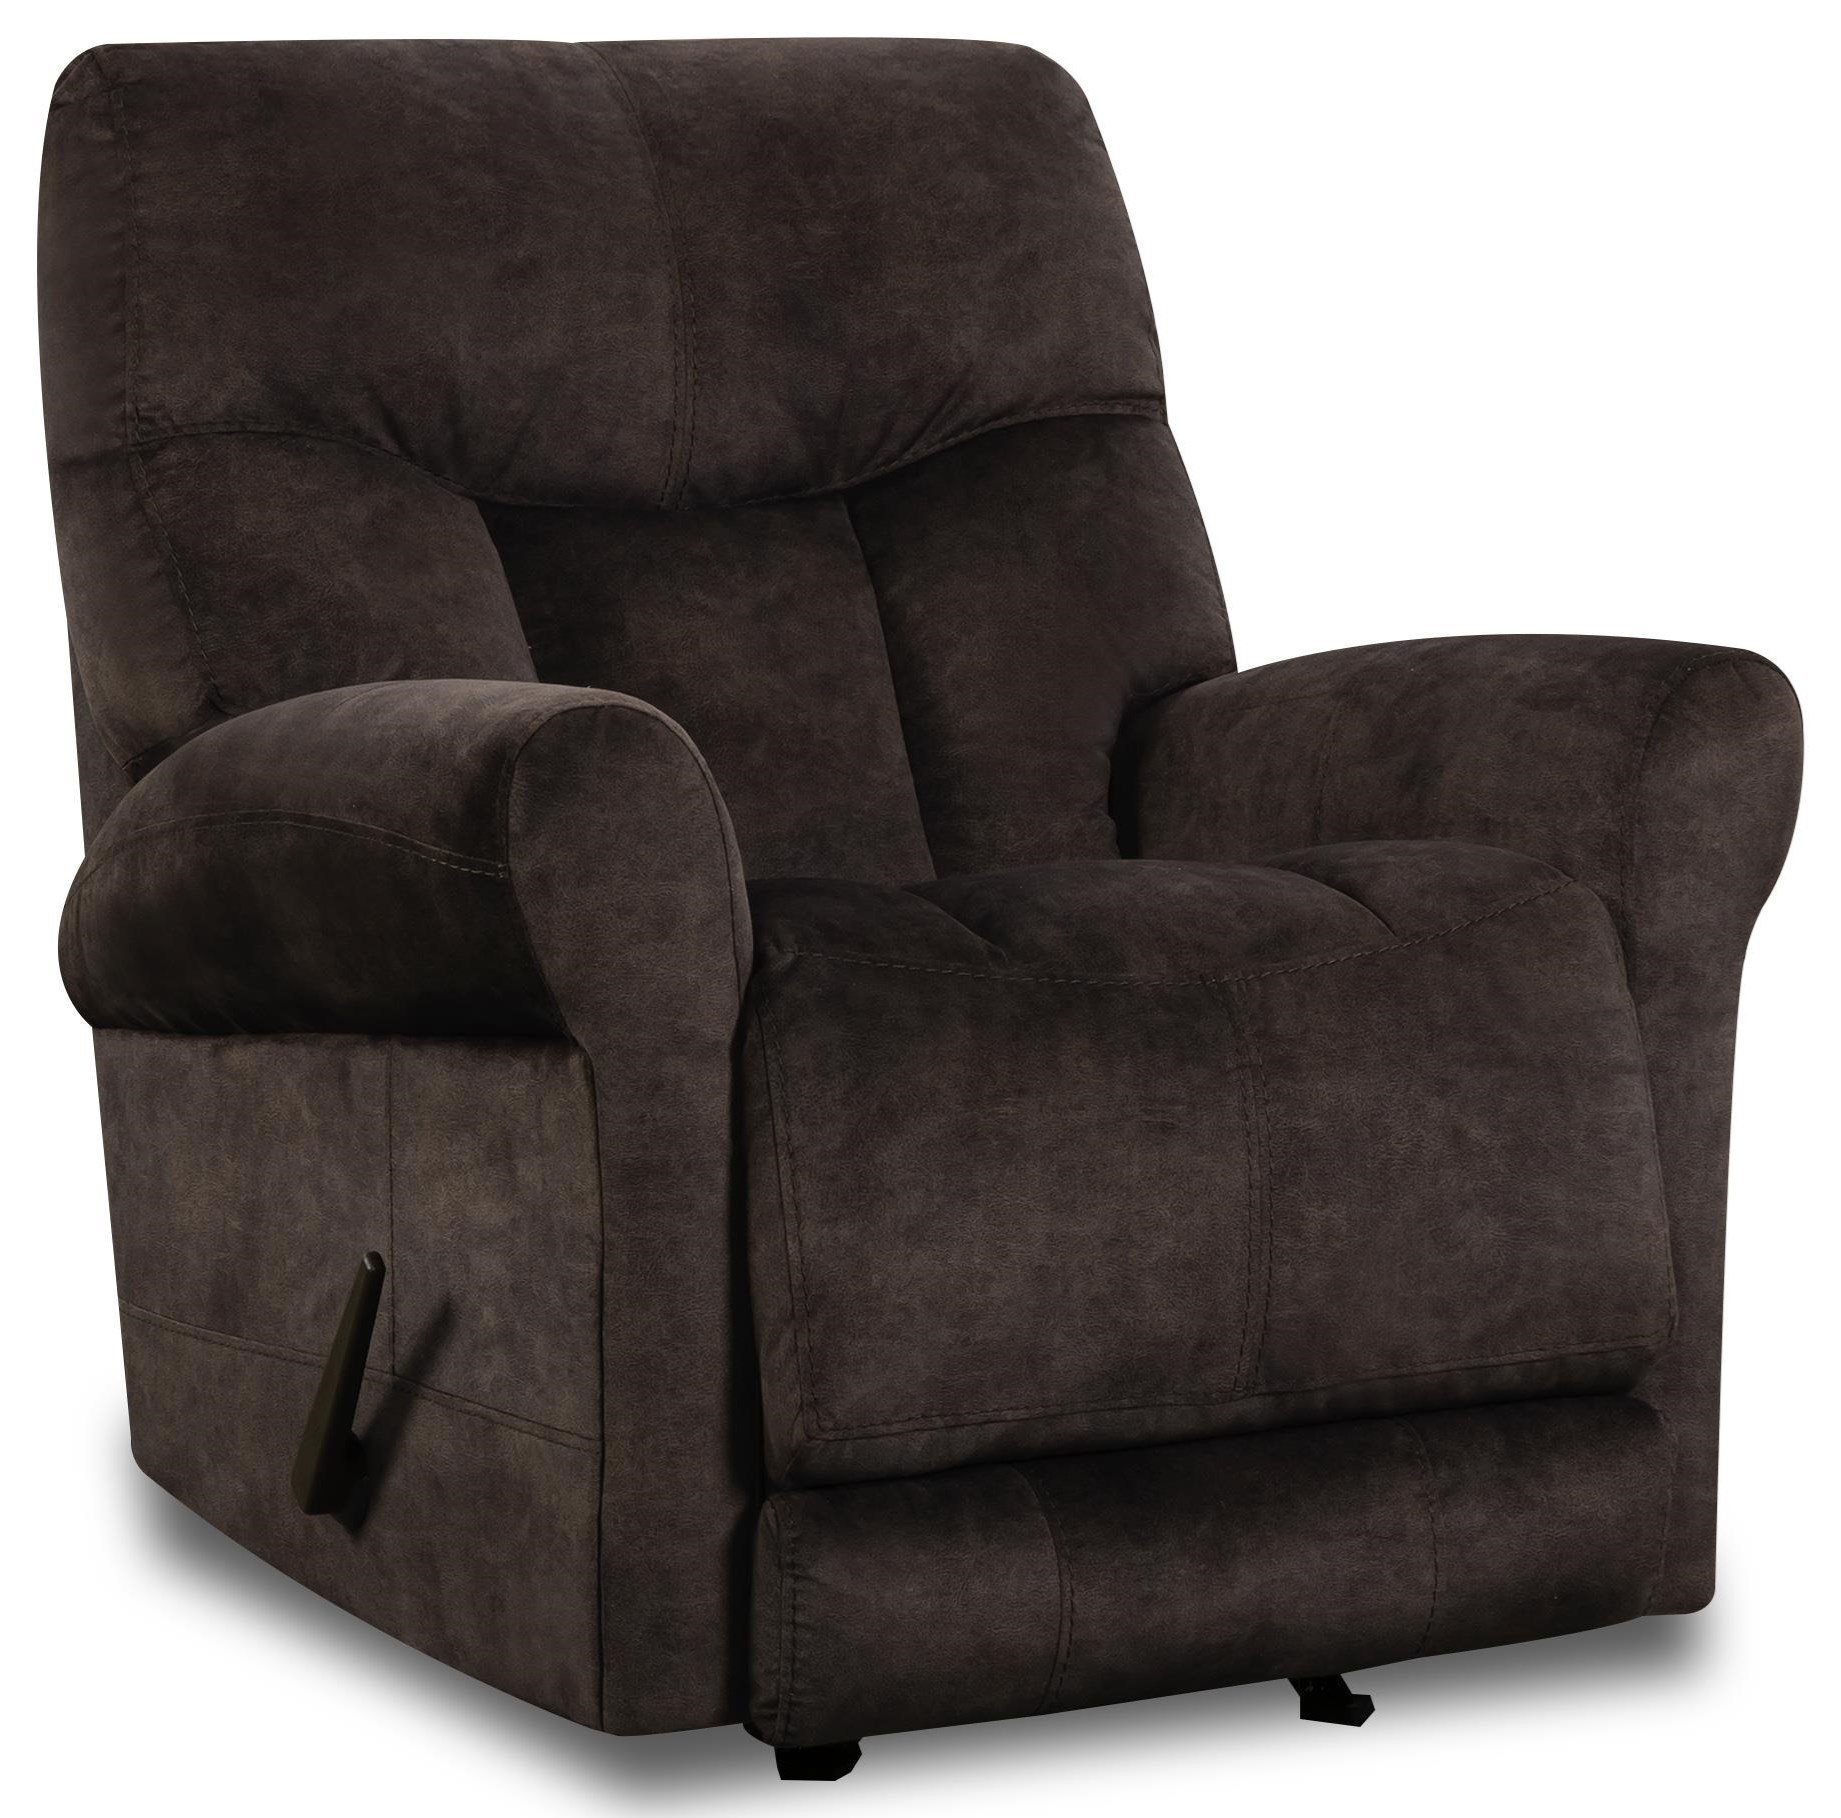 Dundee Rocker Recliner by HomeStretch at Johnny Janosik